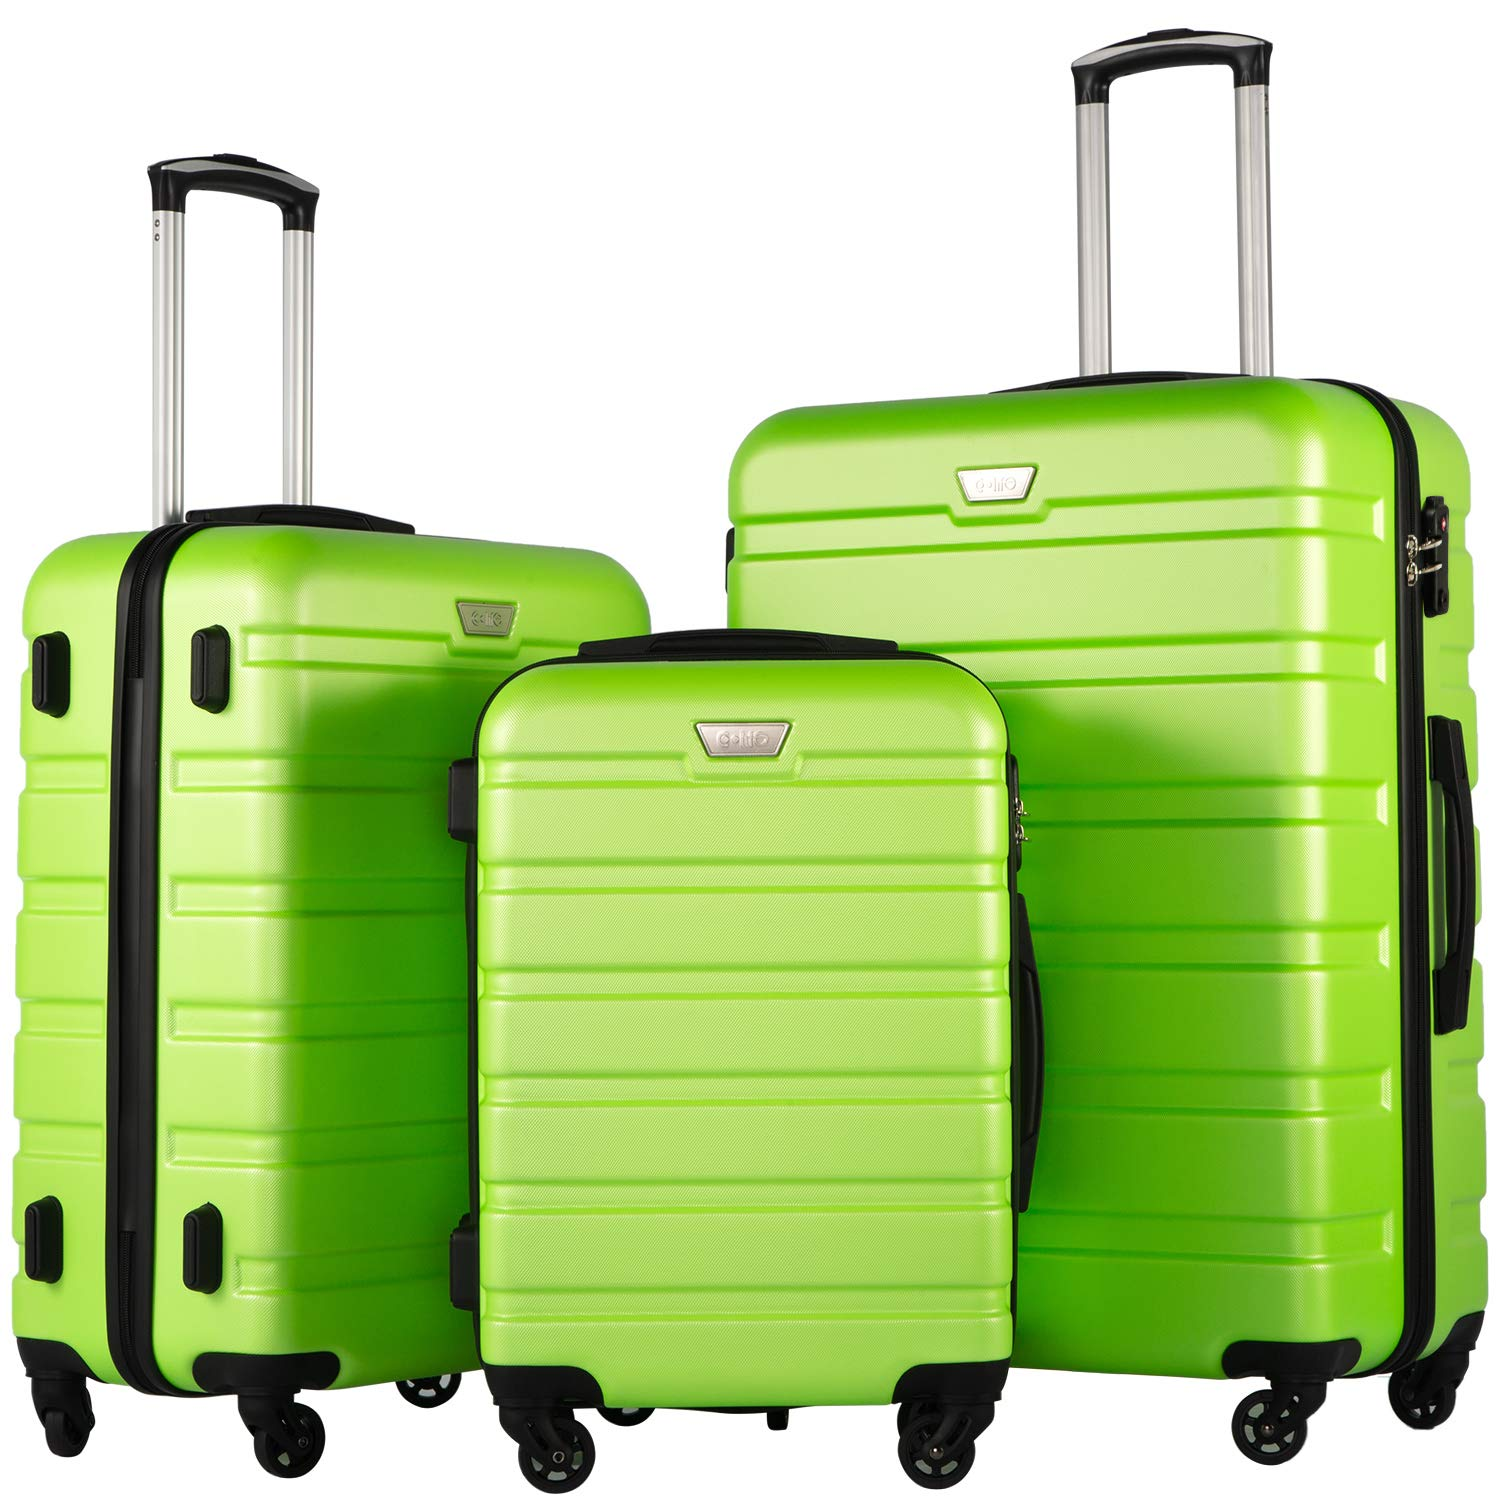 COOLIFE Luggage 3 Piece Set Suitcase Spinner Hardshell Lightweight TSA Lock